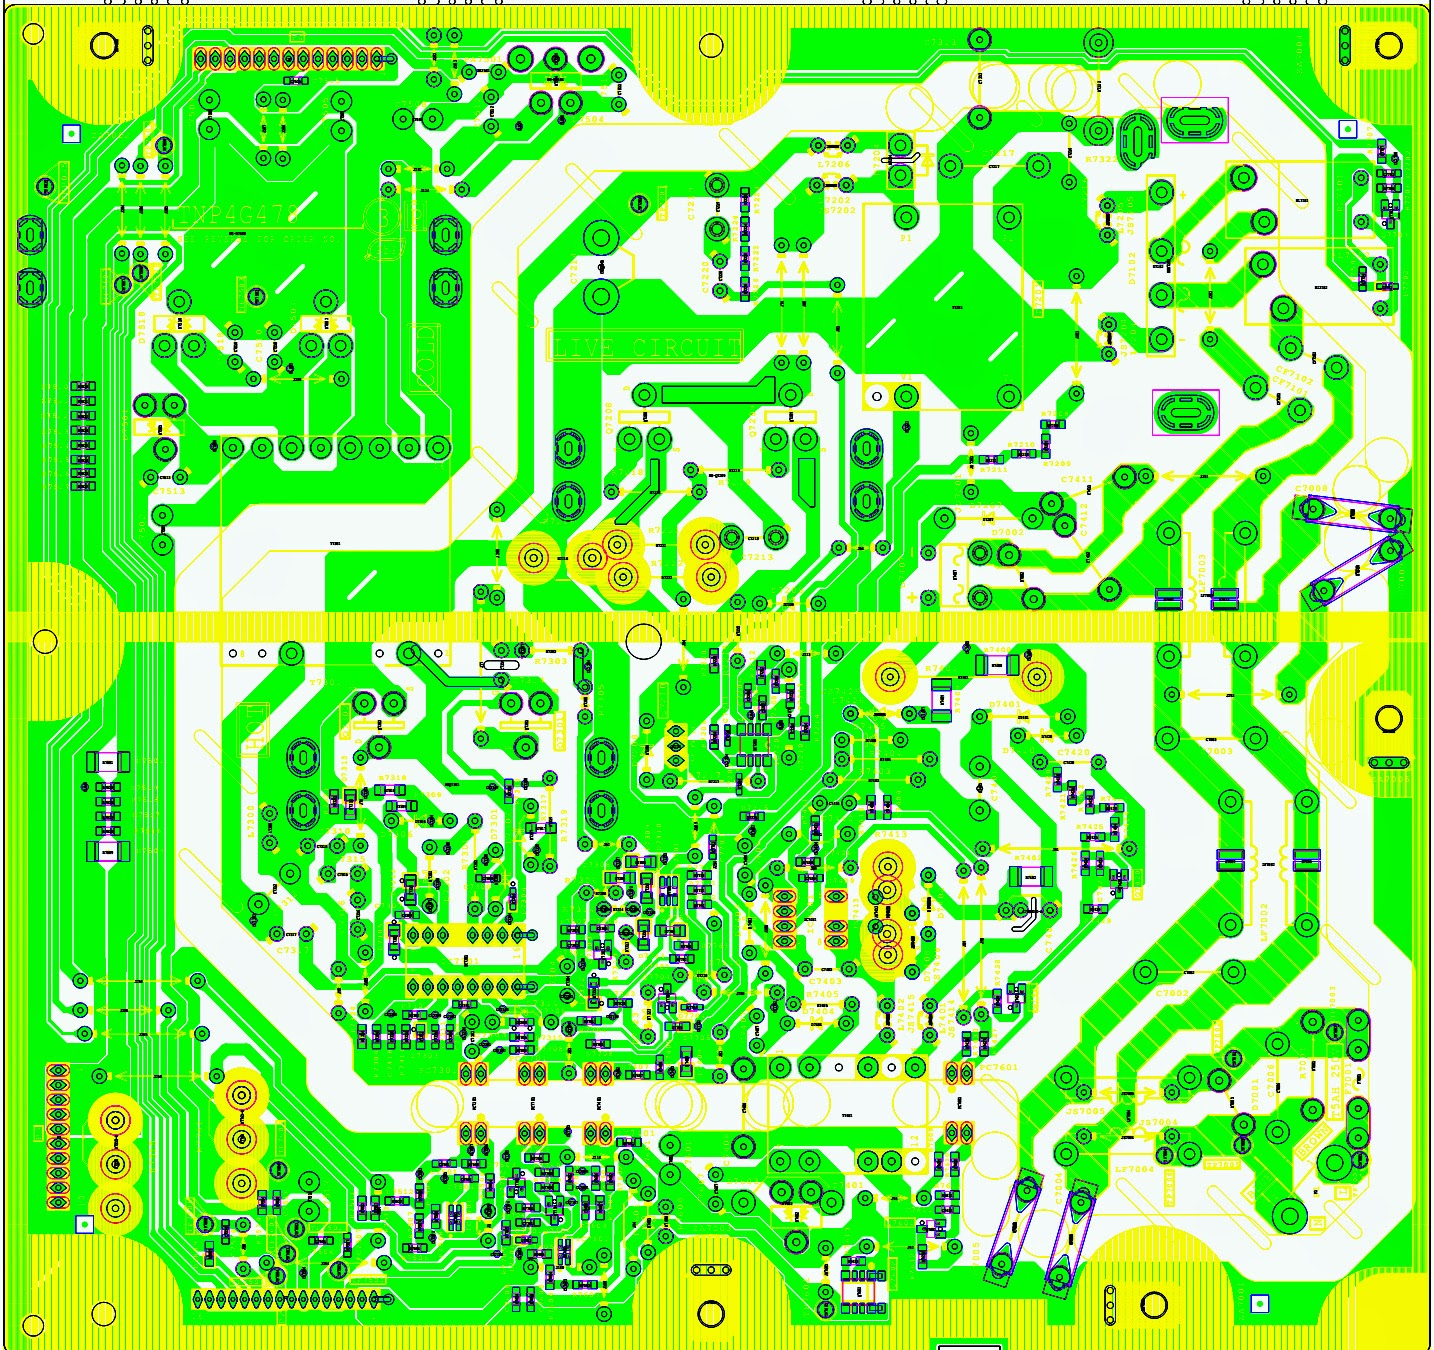 Panasonic Tc L42s20b Lcd Tv Smps Power Supply Schematic Circuit 1200w Amplifier Sanken Electronic View On Large Monitorclick The Pictures To Magnify